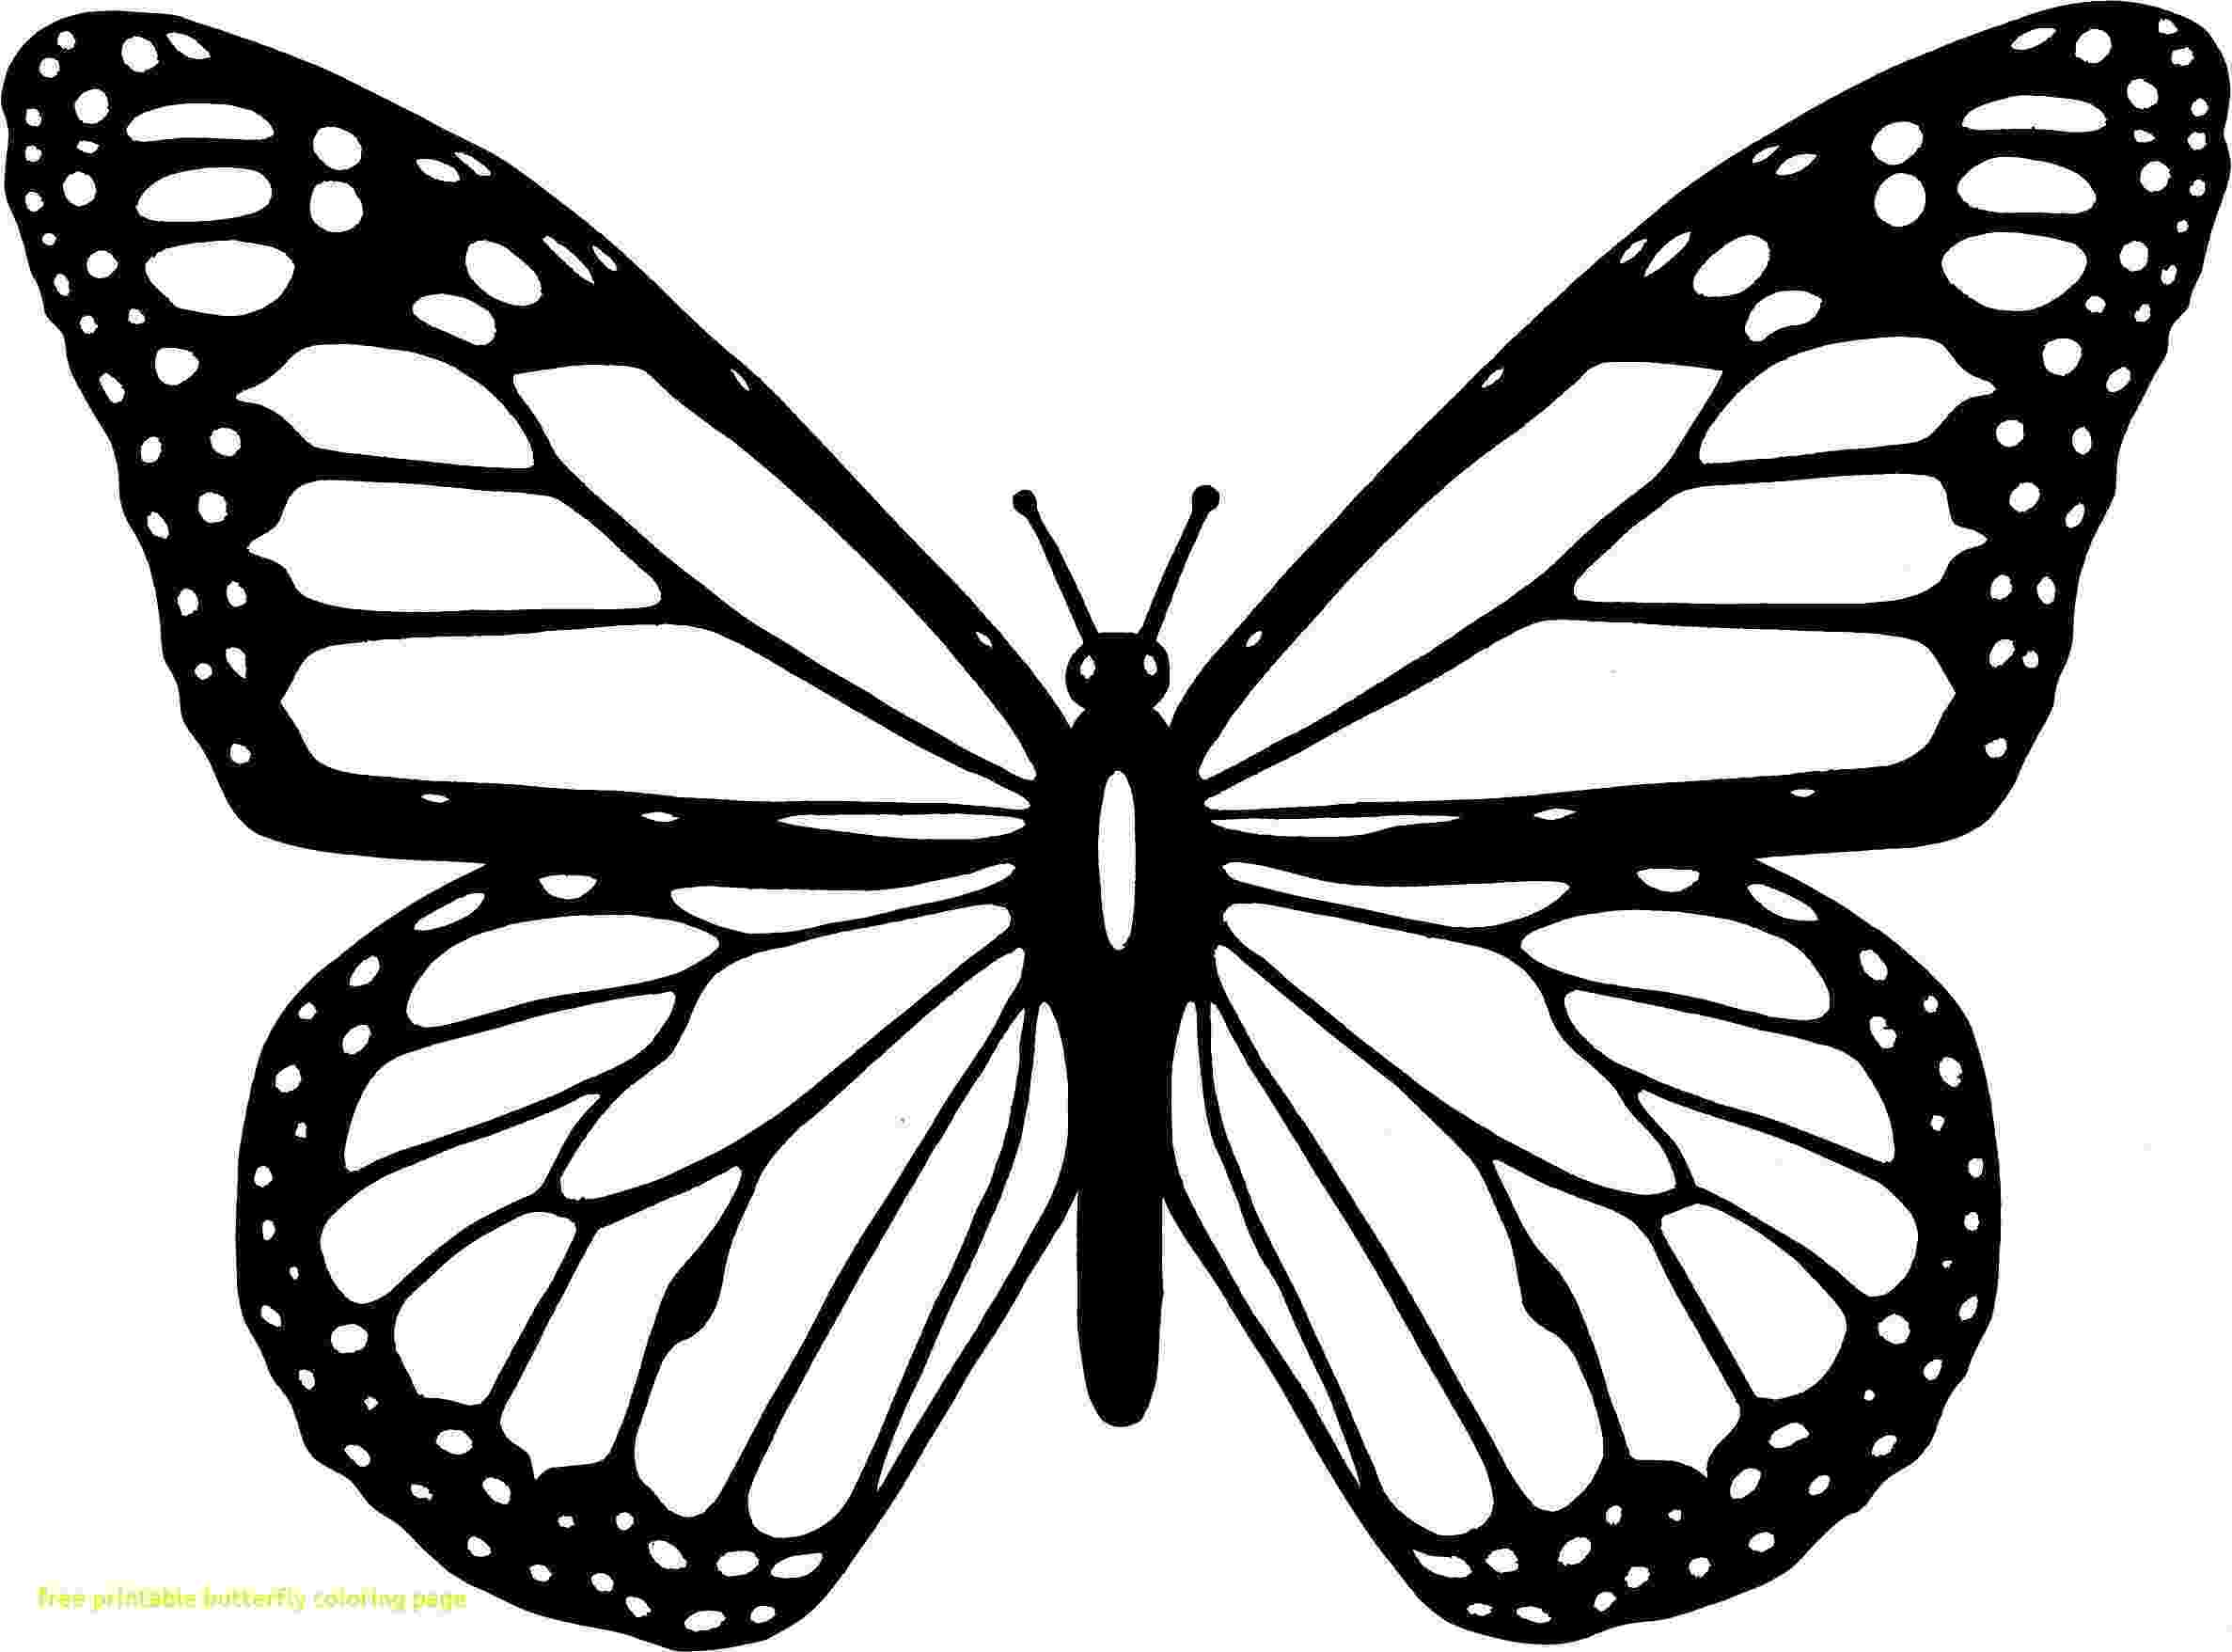 template of butterfly for colouring coloring page of butterfly new easily colouring pages template for butterfly of colouring